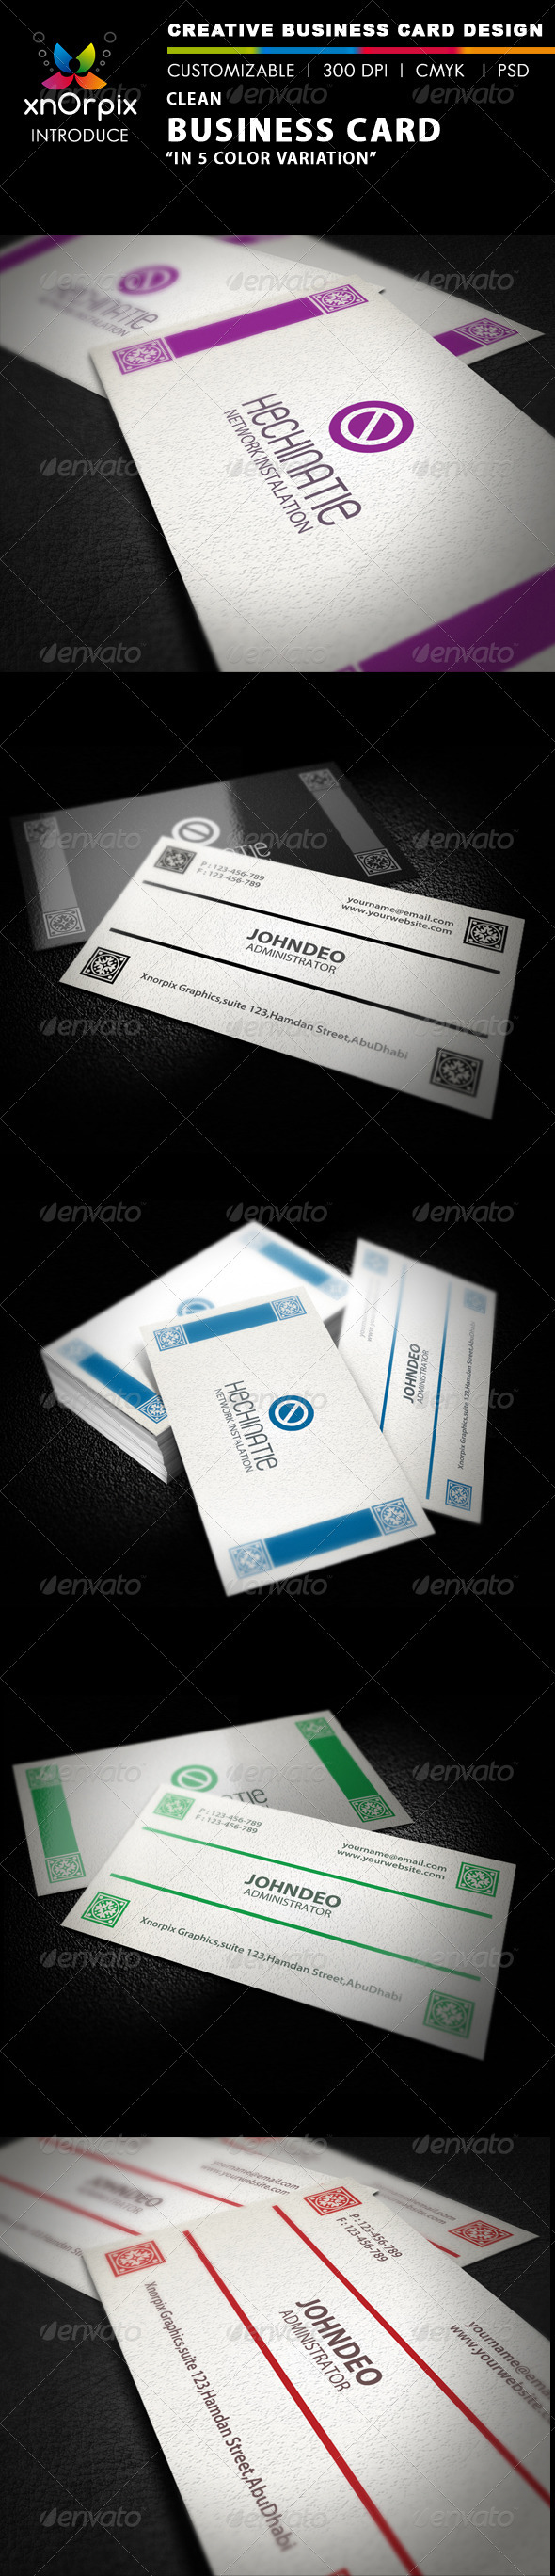 Graphic River Clean Business Card Print Templates -  Business Cards  Corporate 2026335